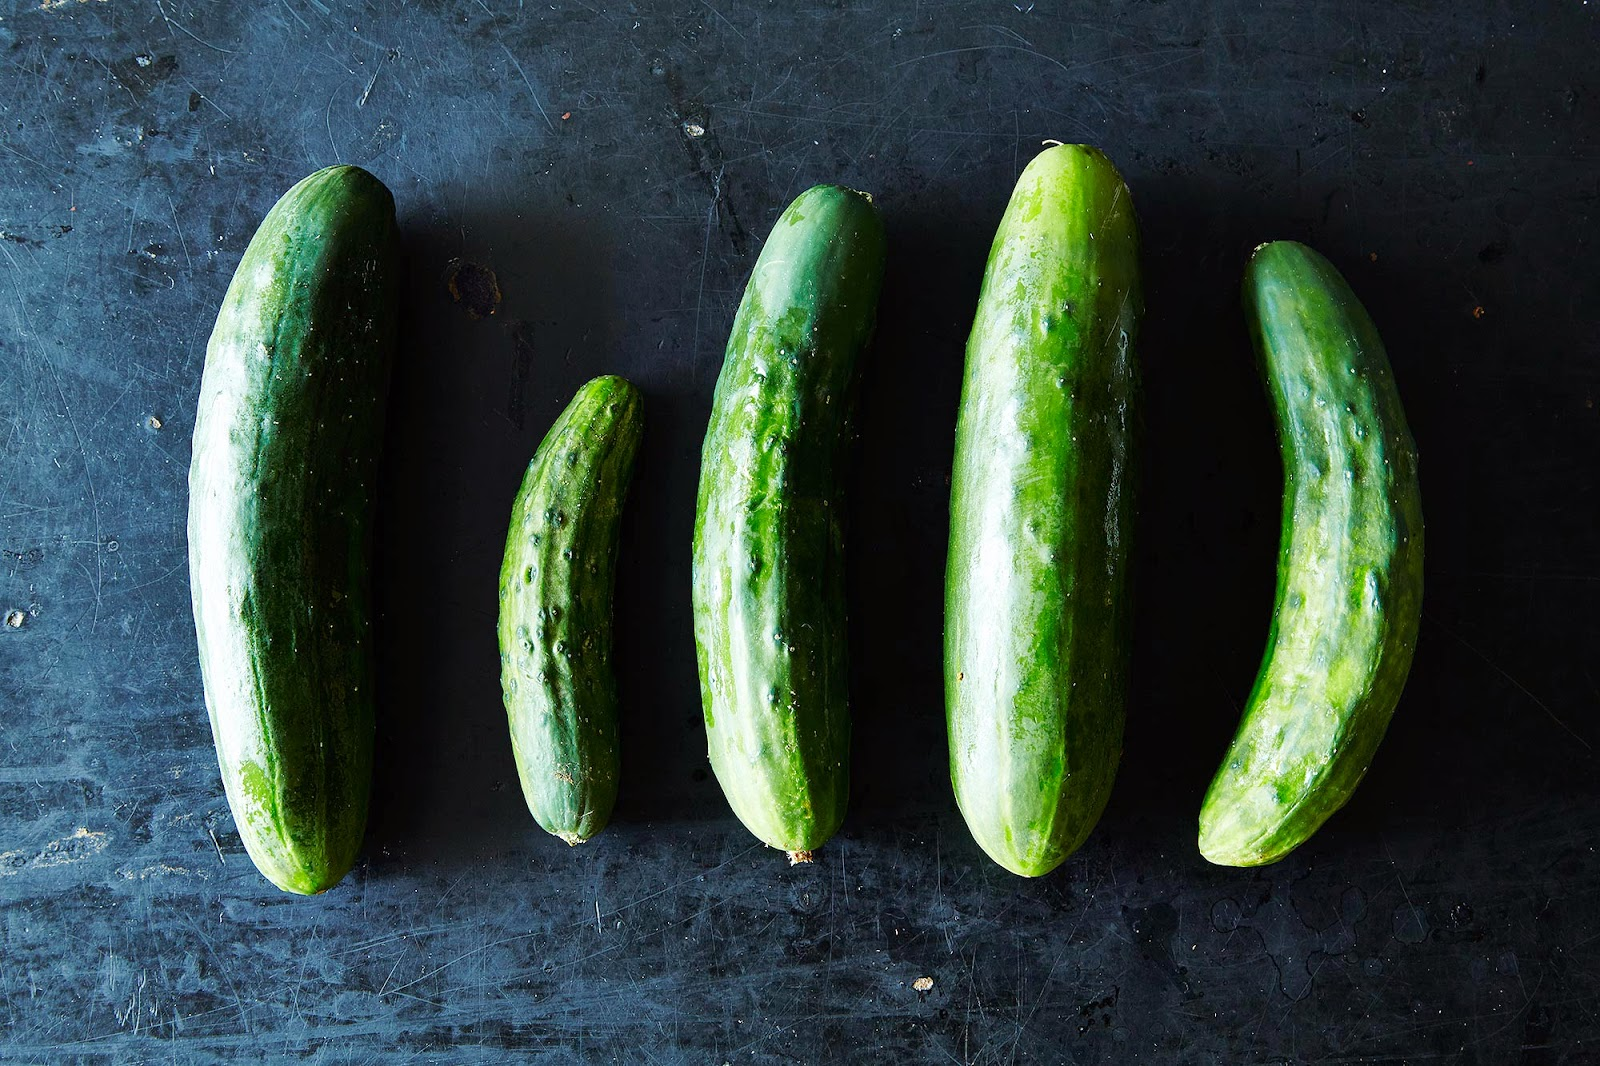 http://food52.com/blog/11106-cucumbers-and-11-of-the-best-ways-to-use-them